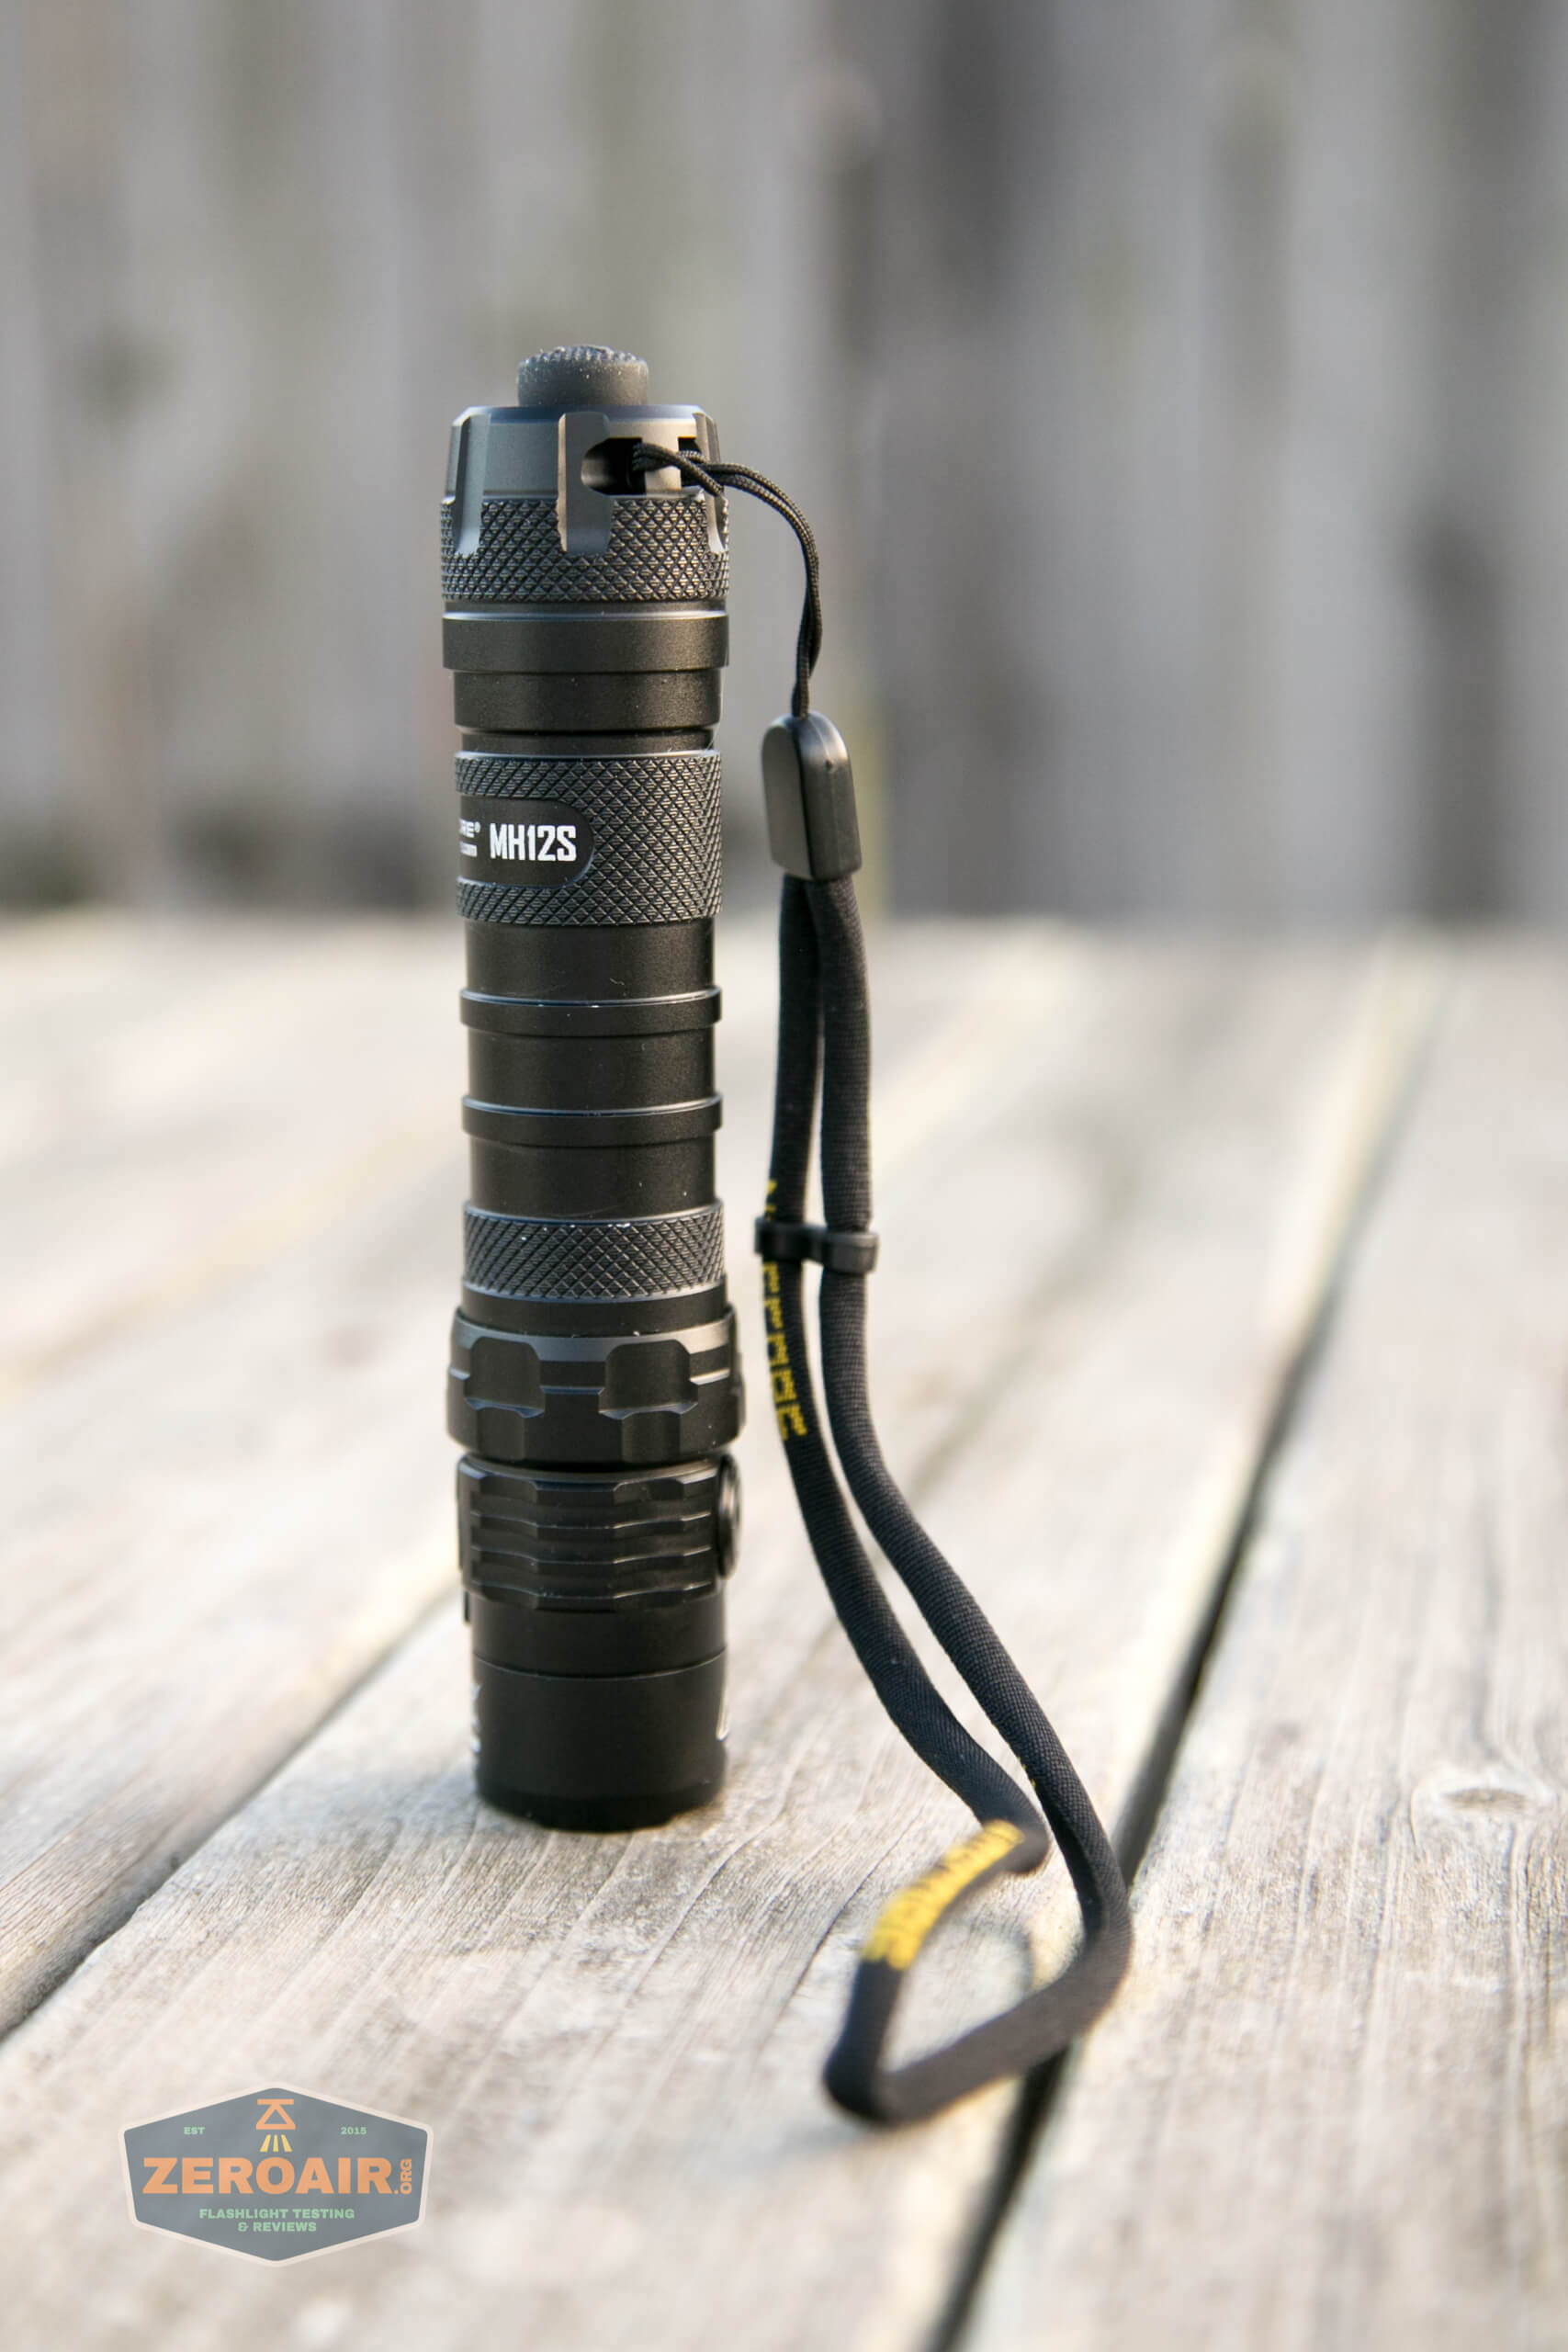 nitecore mh12s tactical flashlight lanyard installed